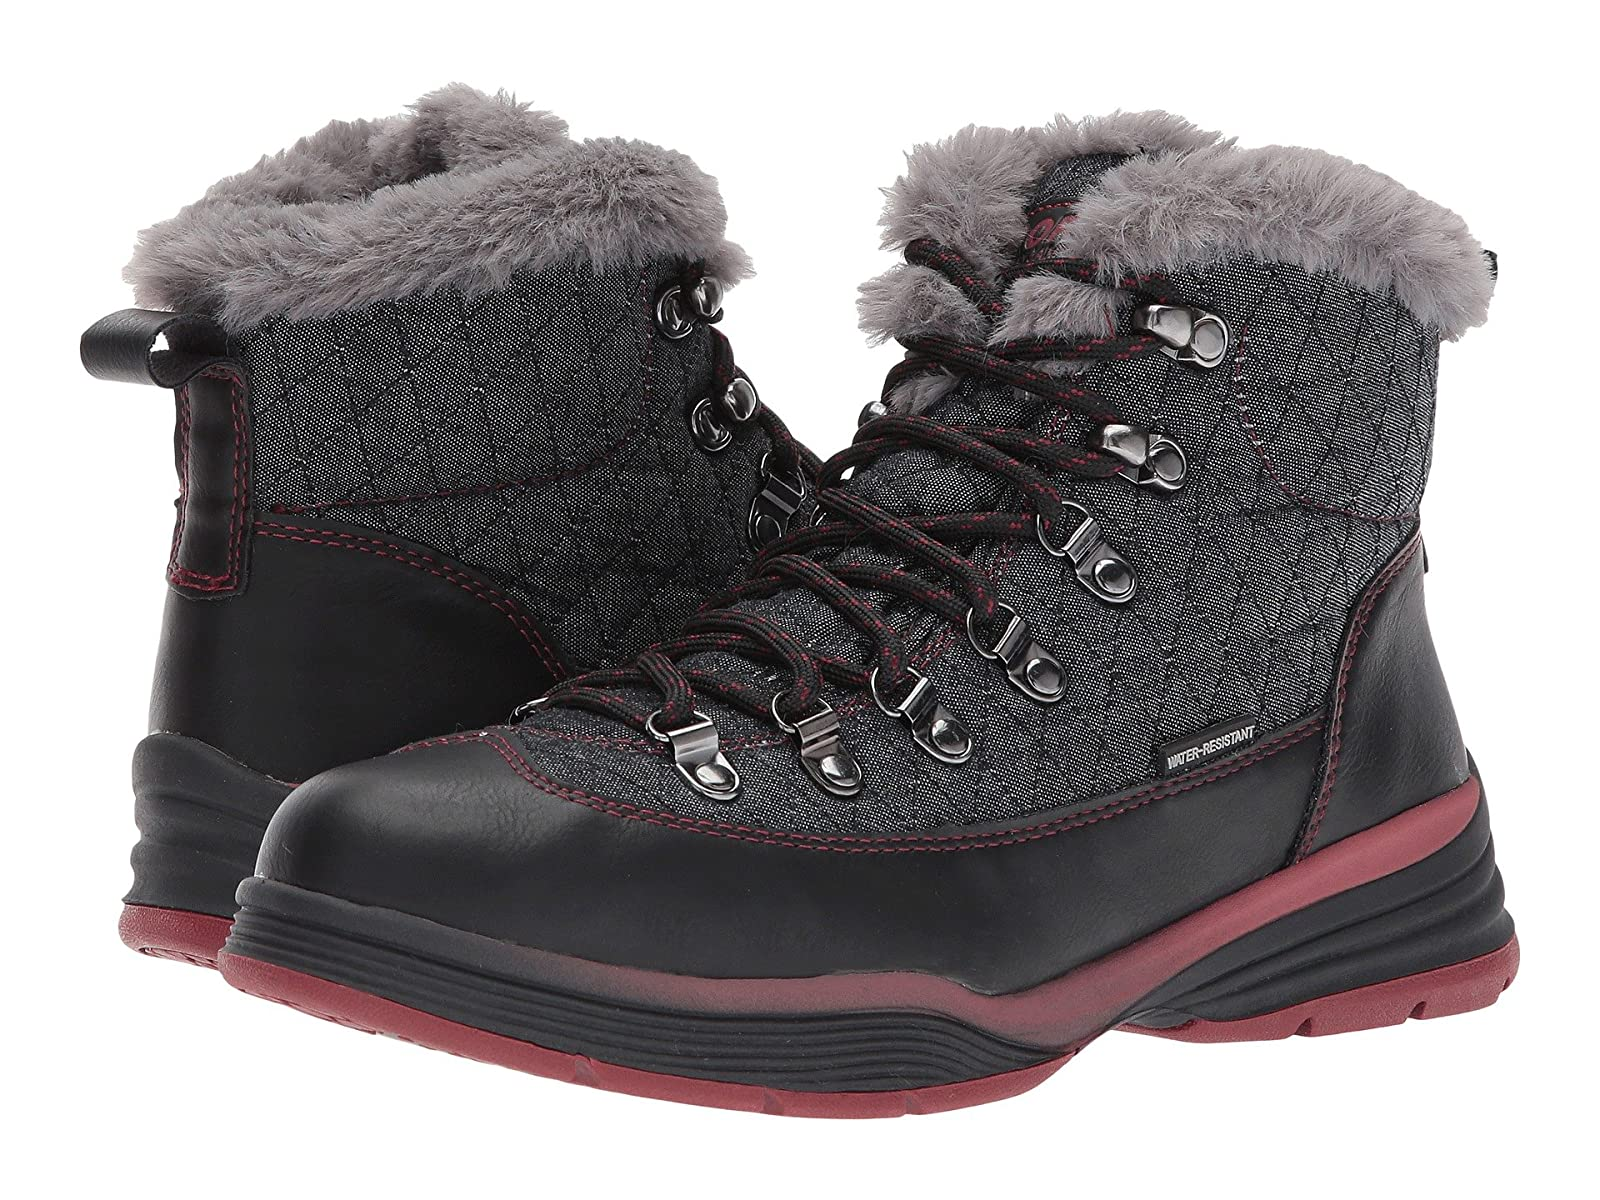 JBU Everest Weather-ReadyCheap and distinctive eye-catching shoes